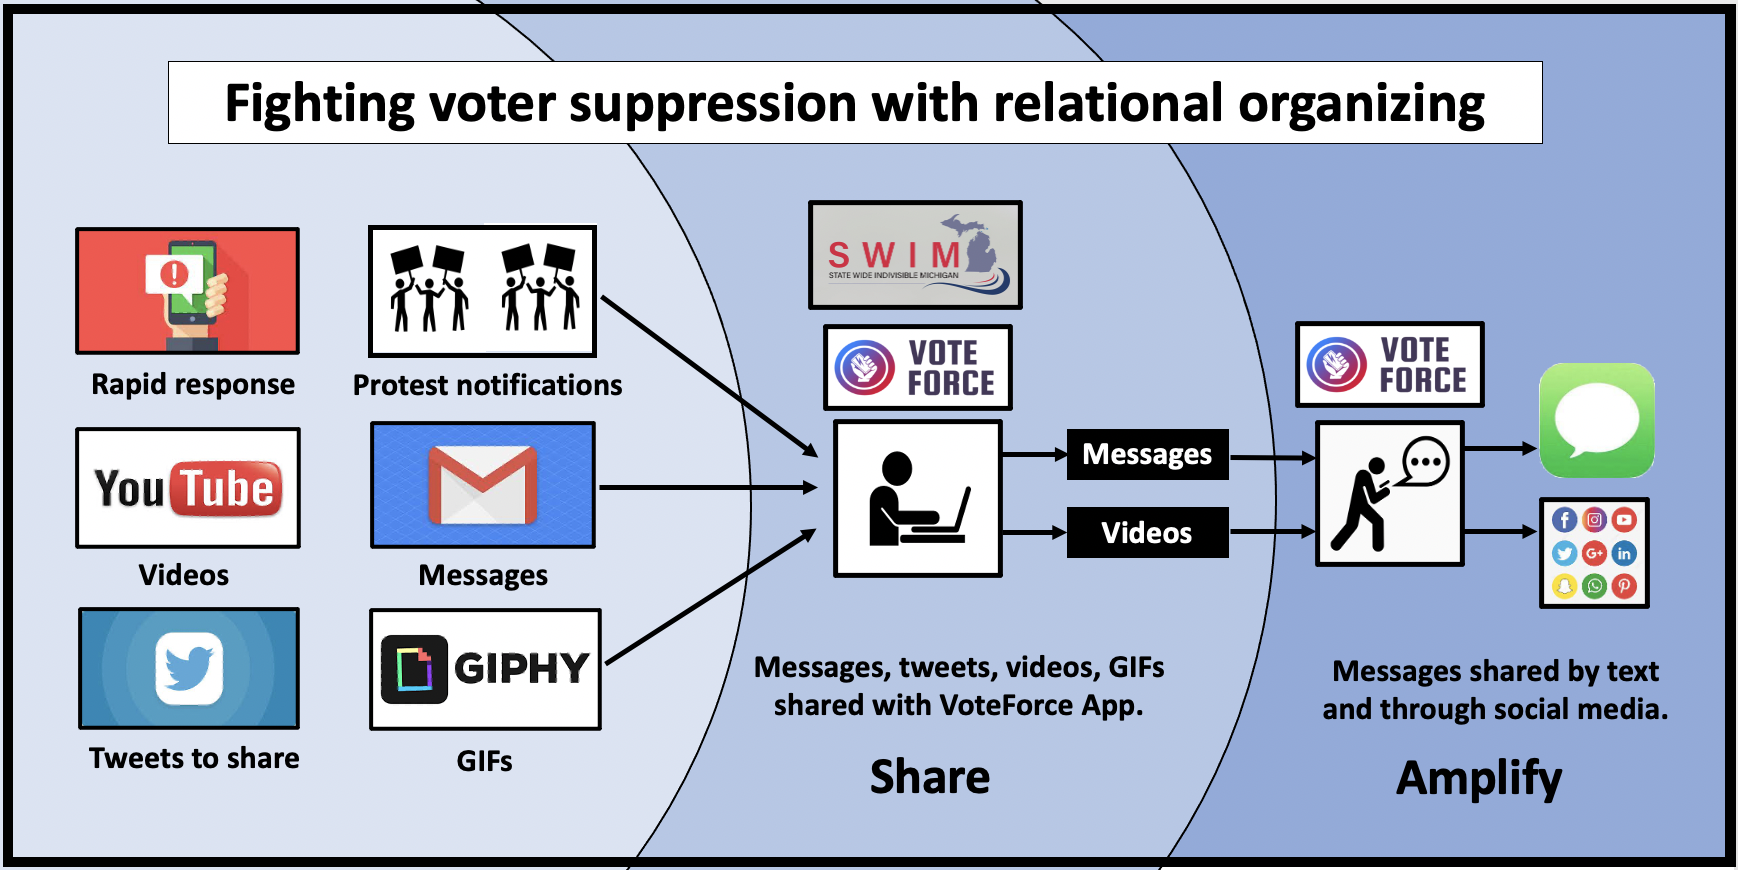 Relational organizing helps with rapid response and mobilization to protest voter suppression.